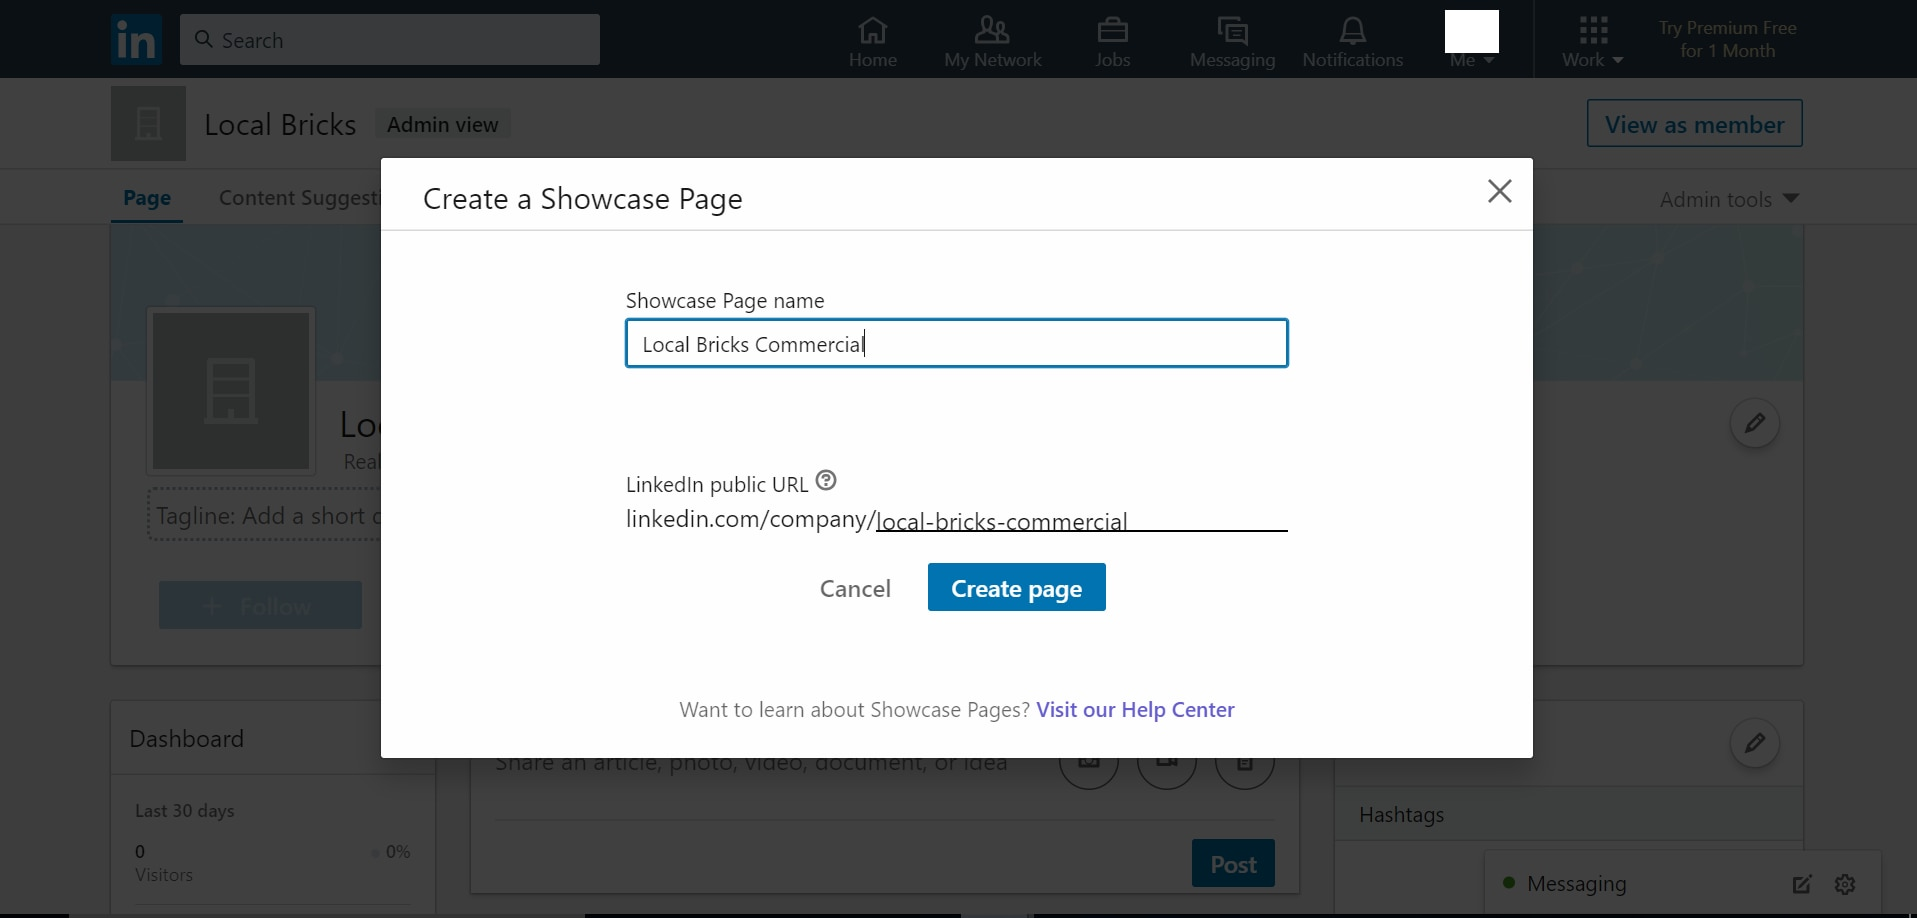 LinkedIn admin page showing various fields to be filled for creating LinkedIn Showcase Page